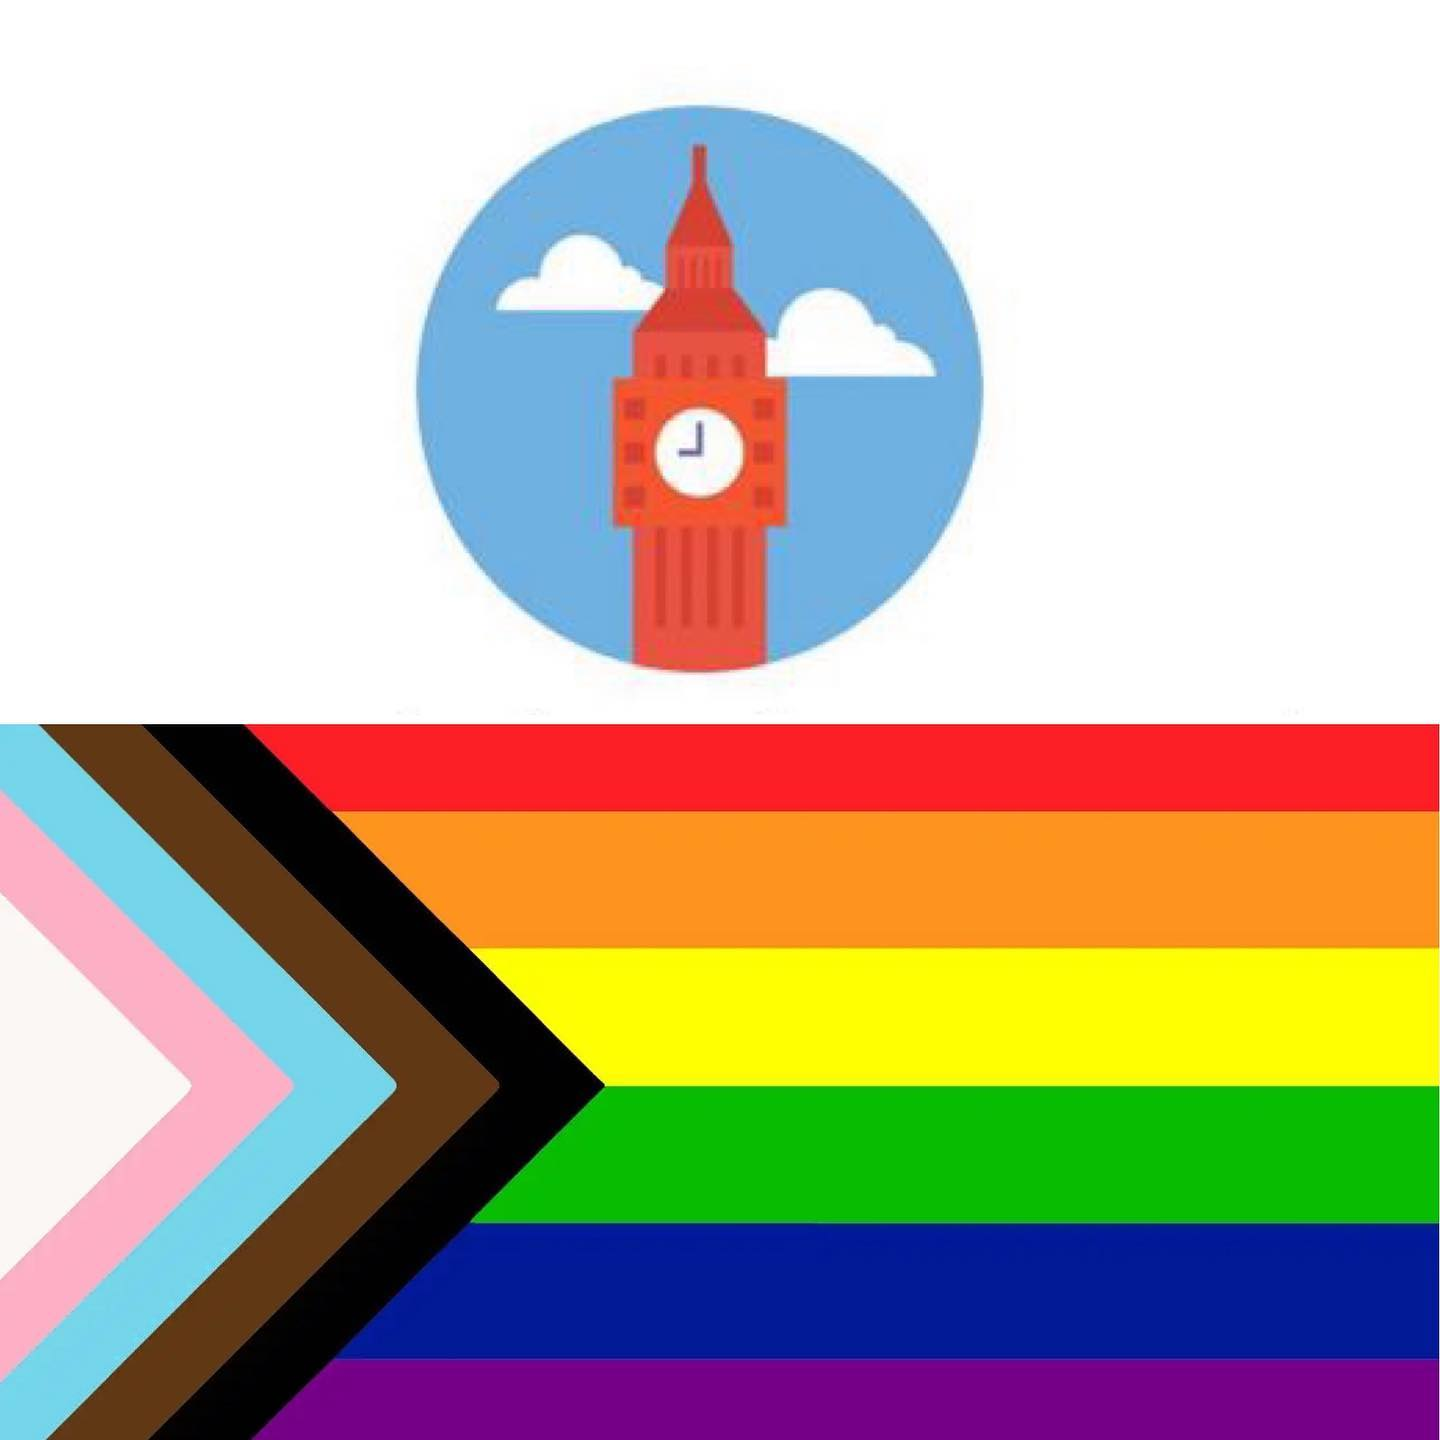 Everyone's welcome to stayinlondon.co.uk! Celebrating pride month! #pride